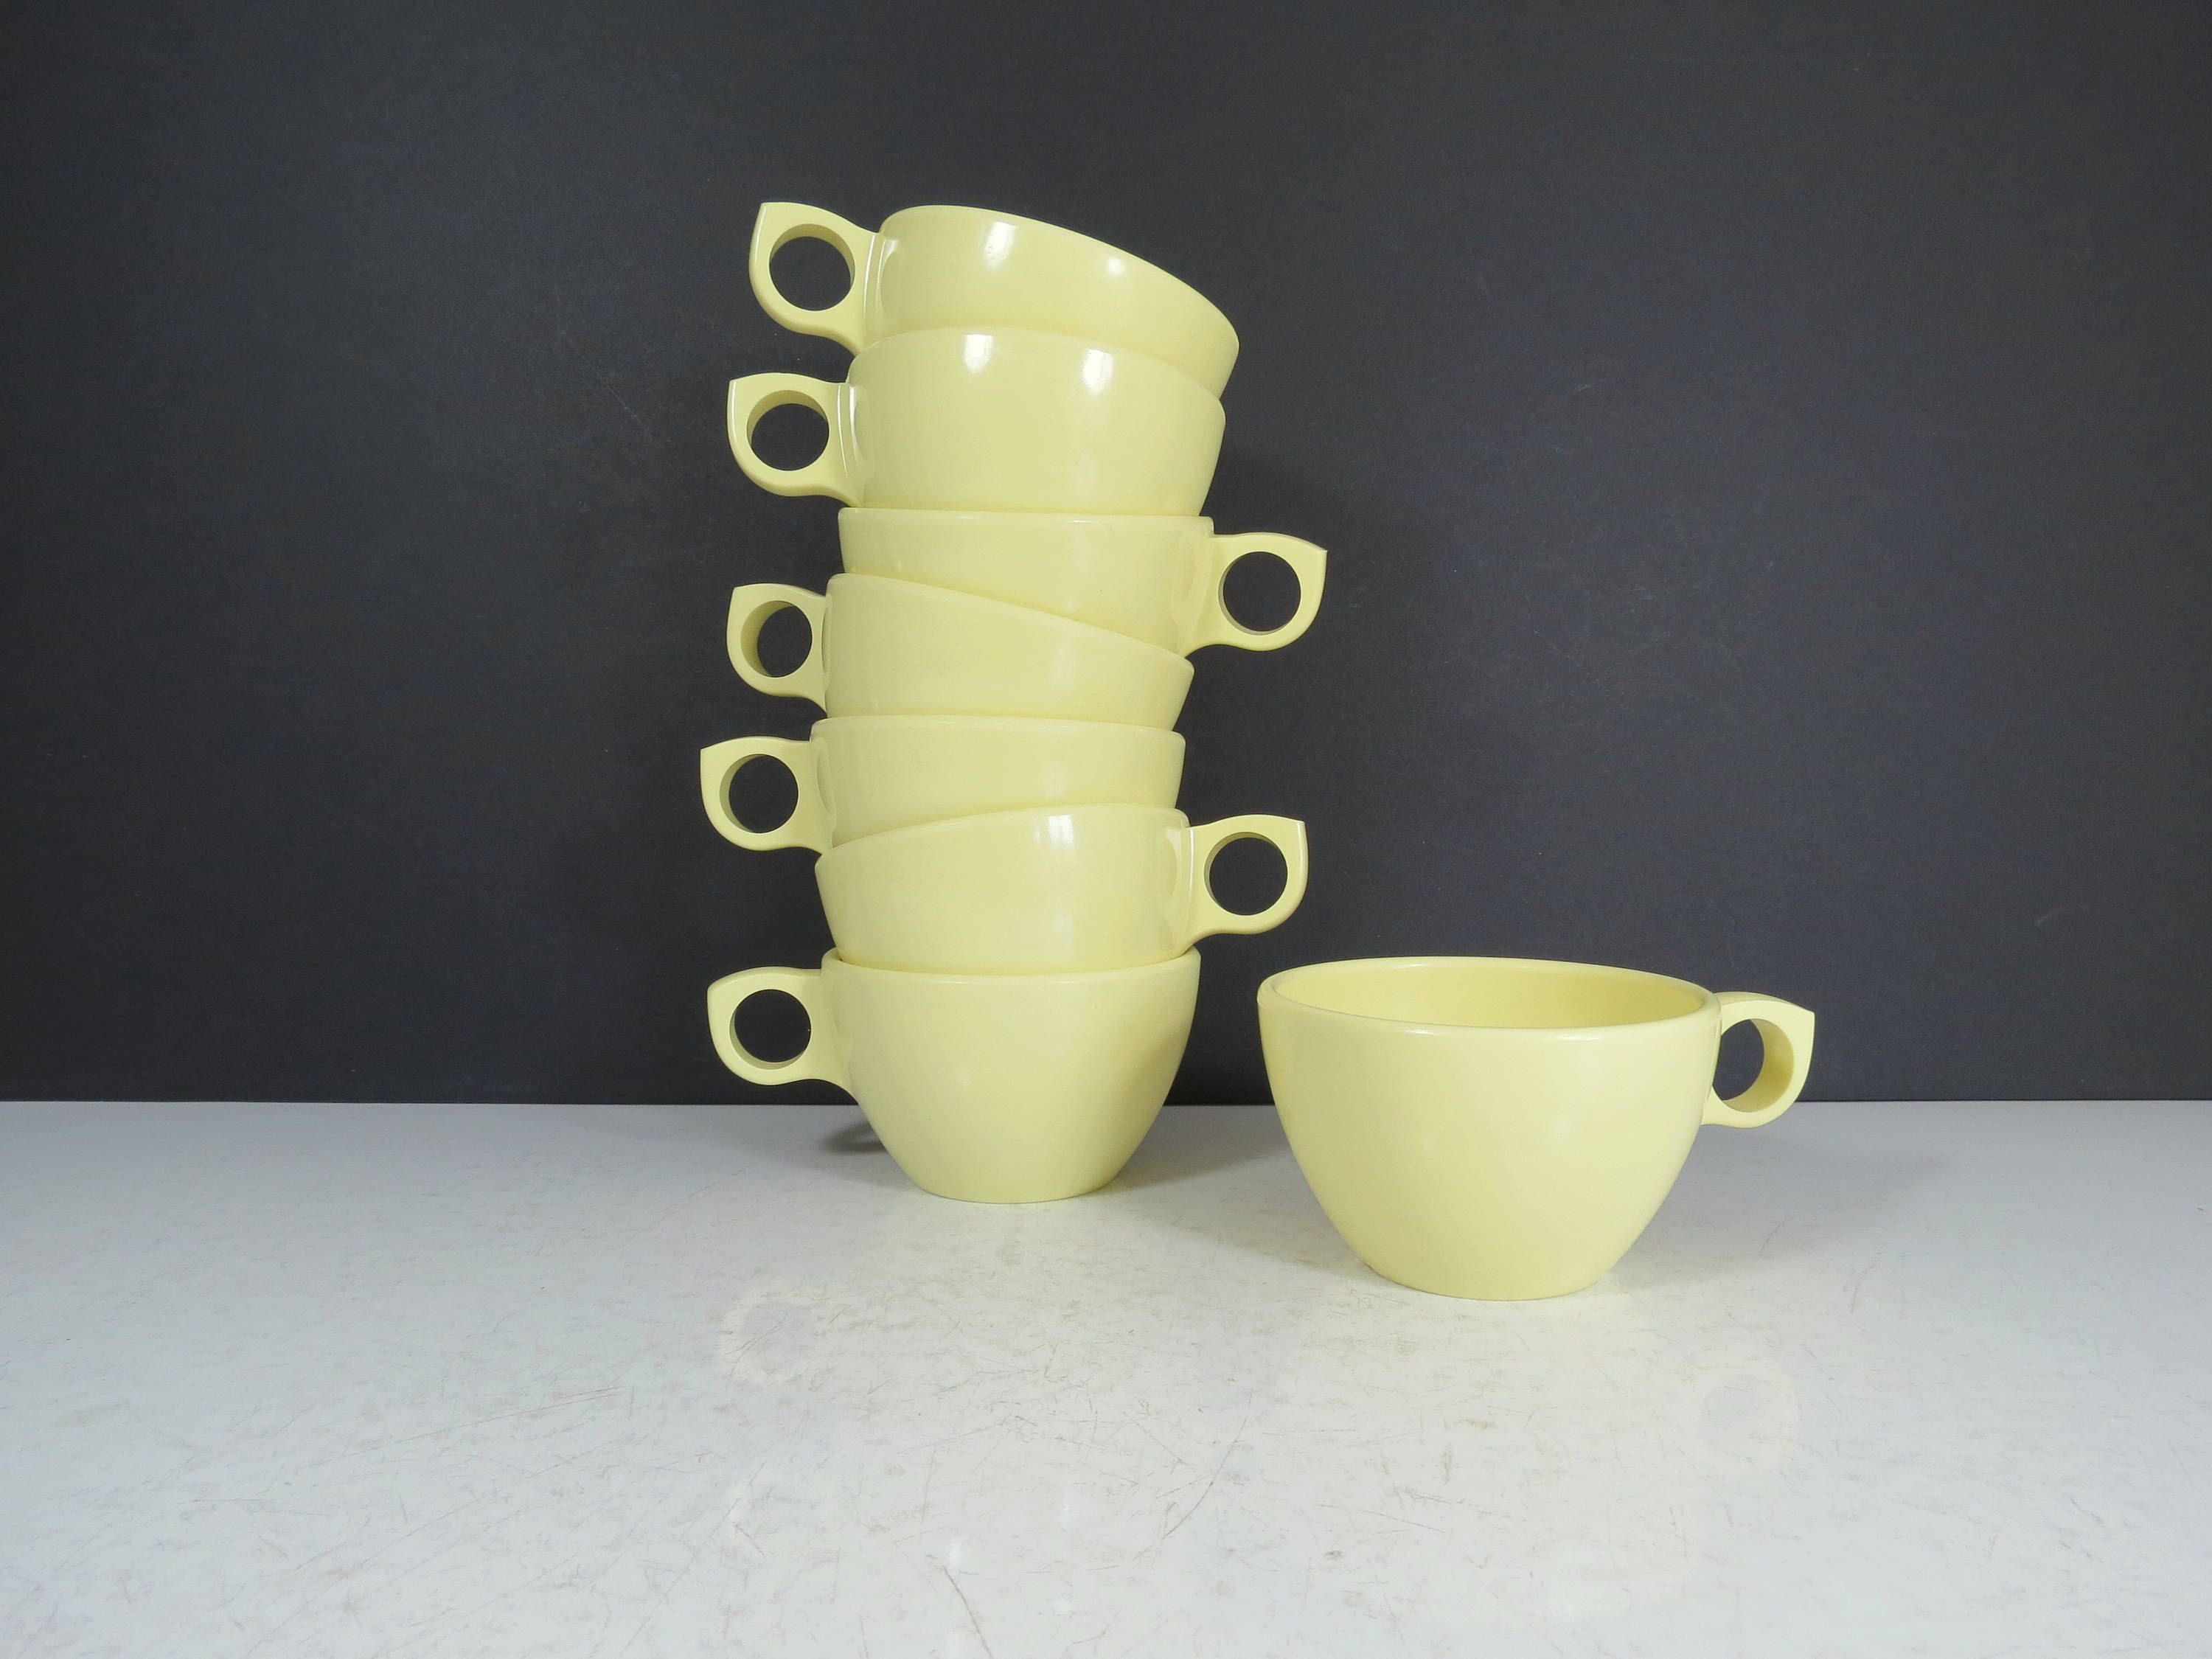 lenox floral vase of 43 lenox vase with gold trim the weekly world for melmac teacups set vintage pale yellow melamine coffee cups